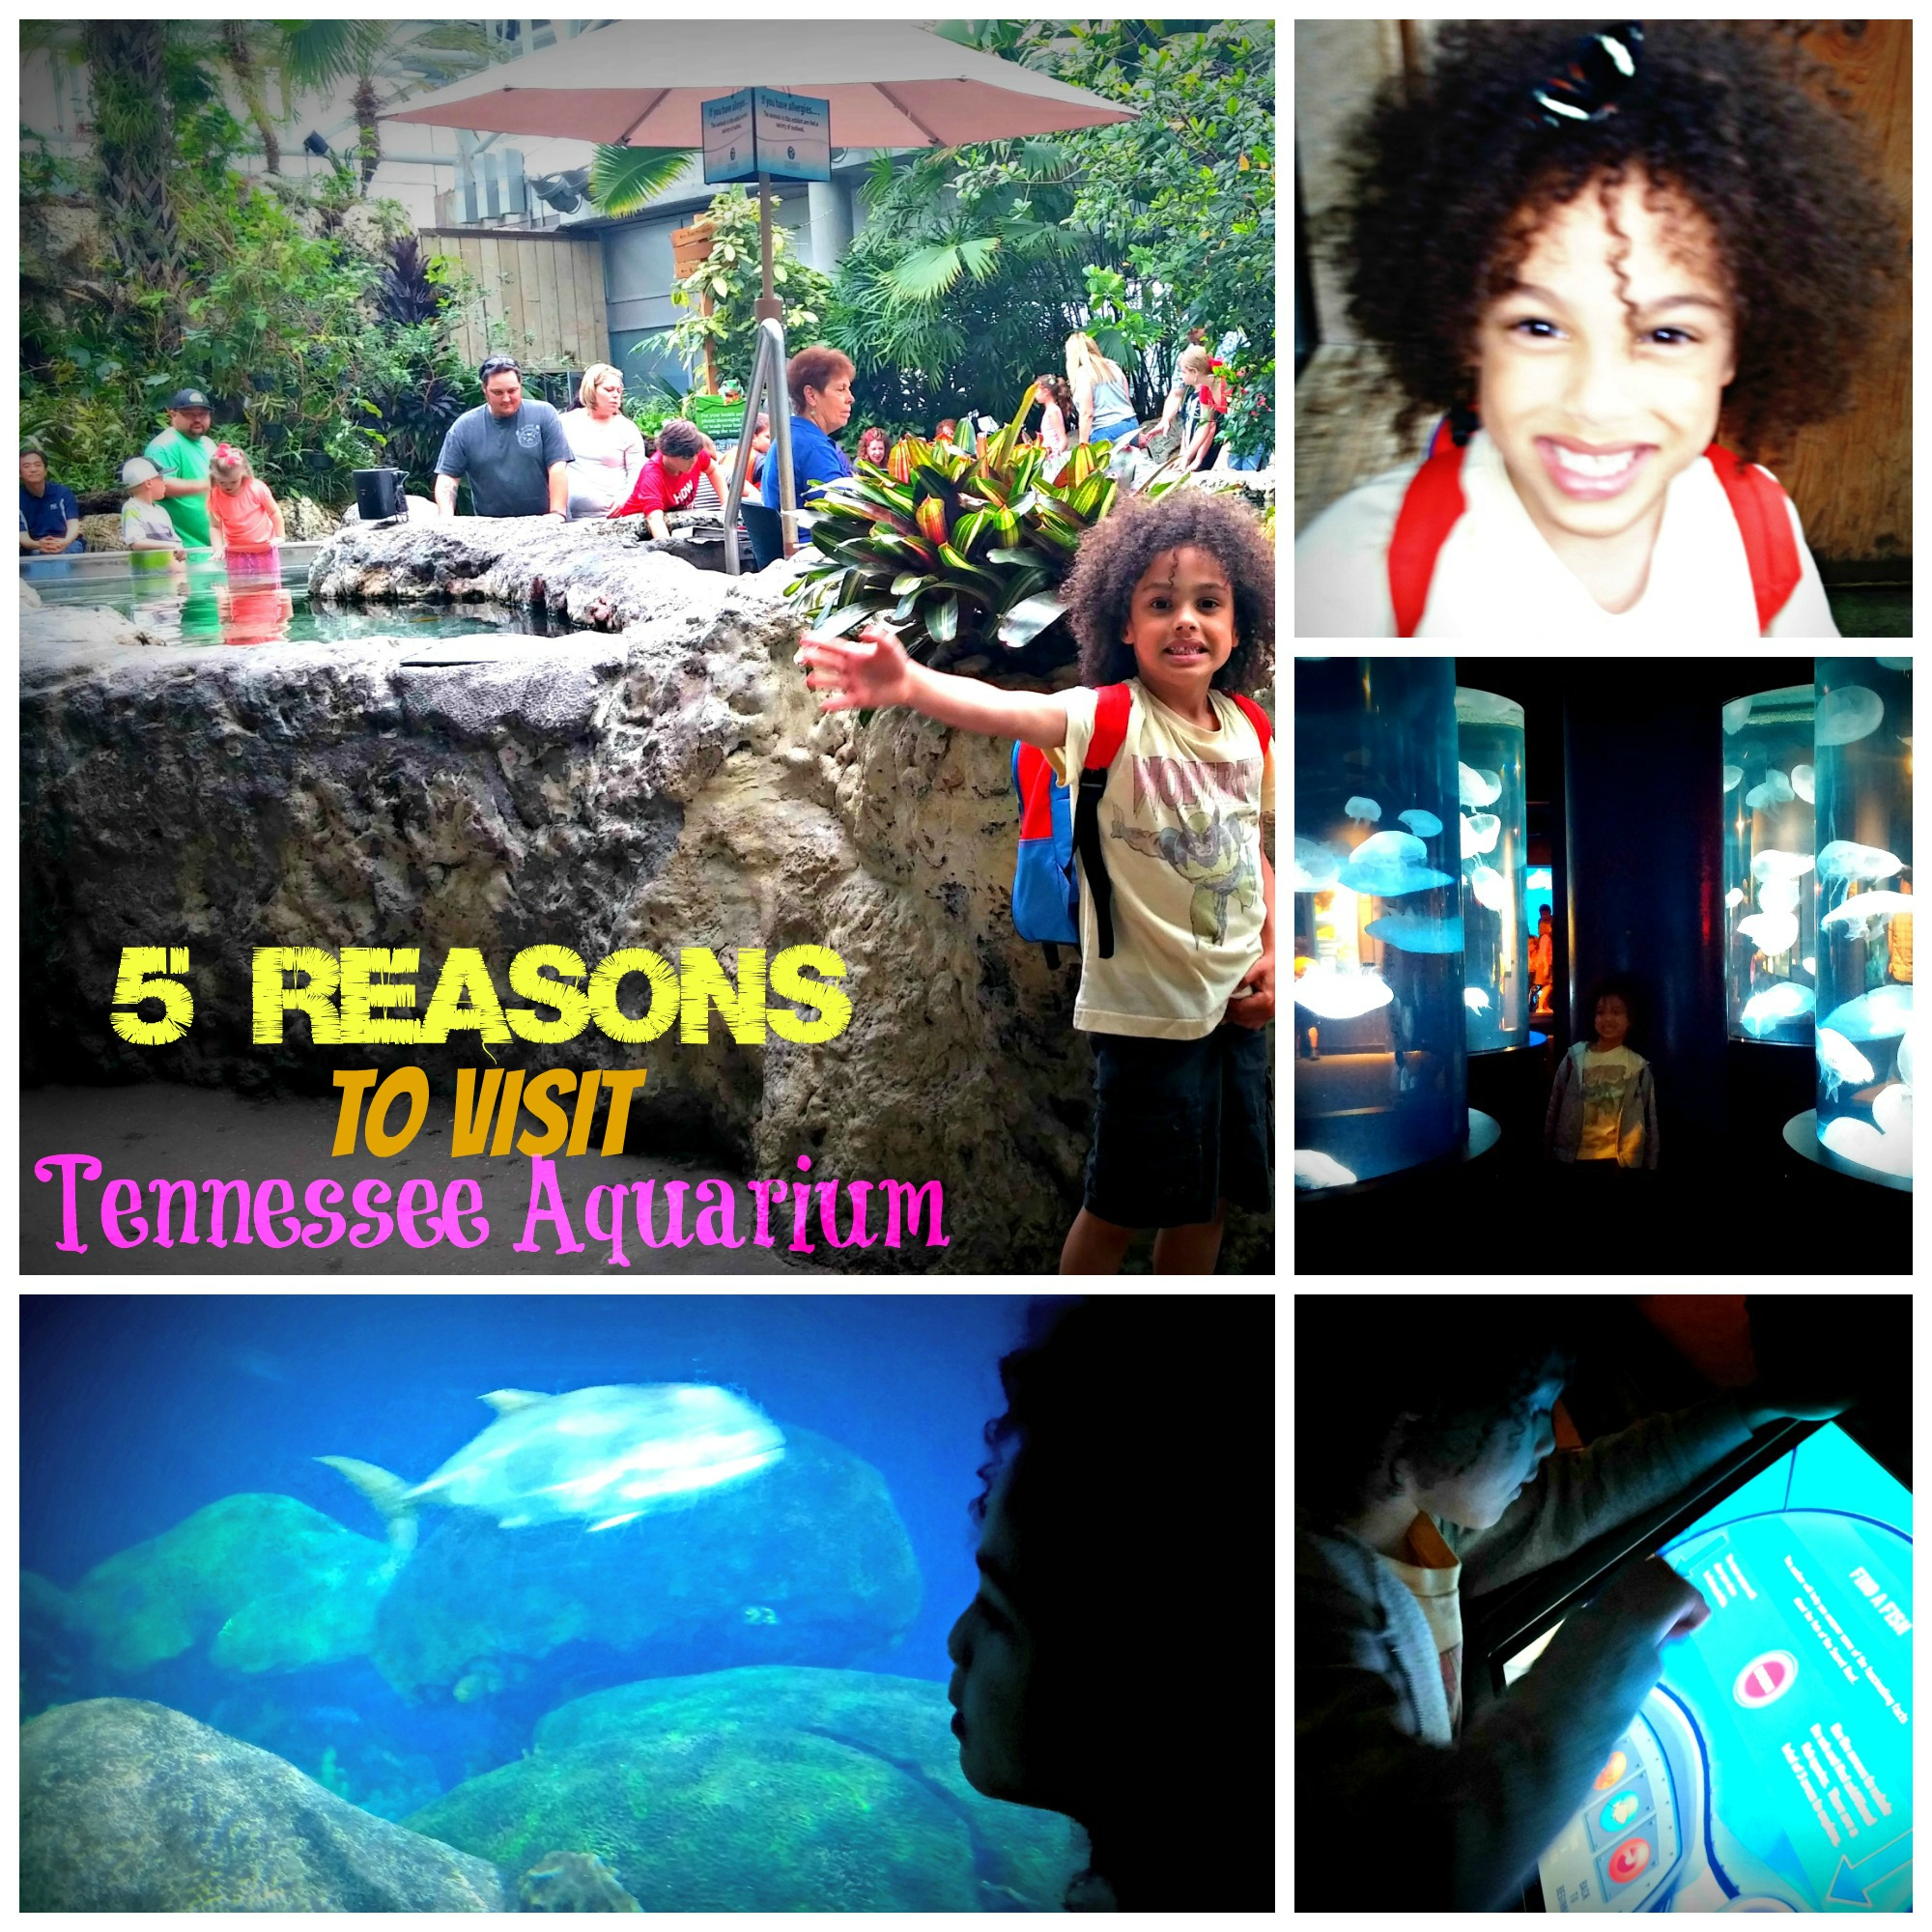 5 Reasons to visit Tennessee Aquarium